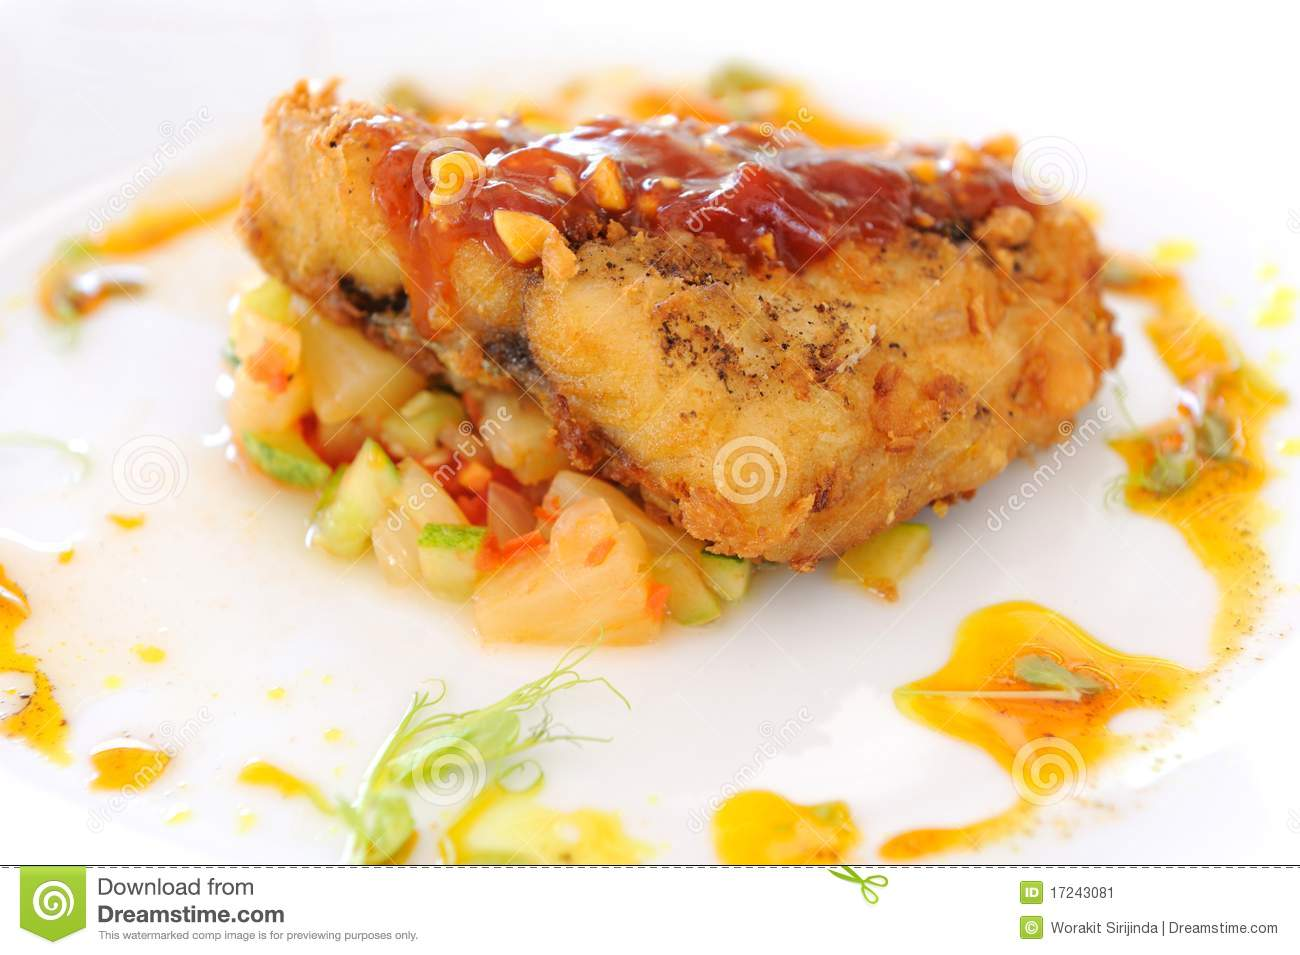 Grilled Fish Steak Stock Image - Image: 17243081